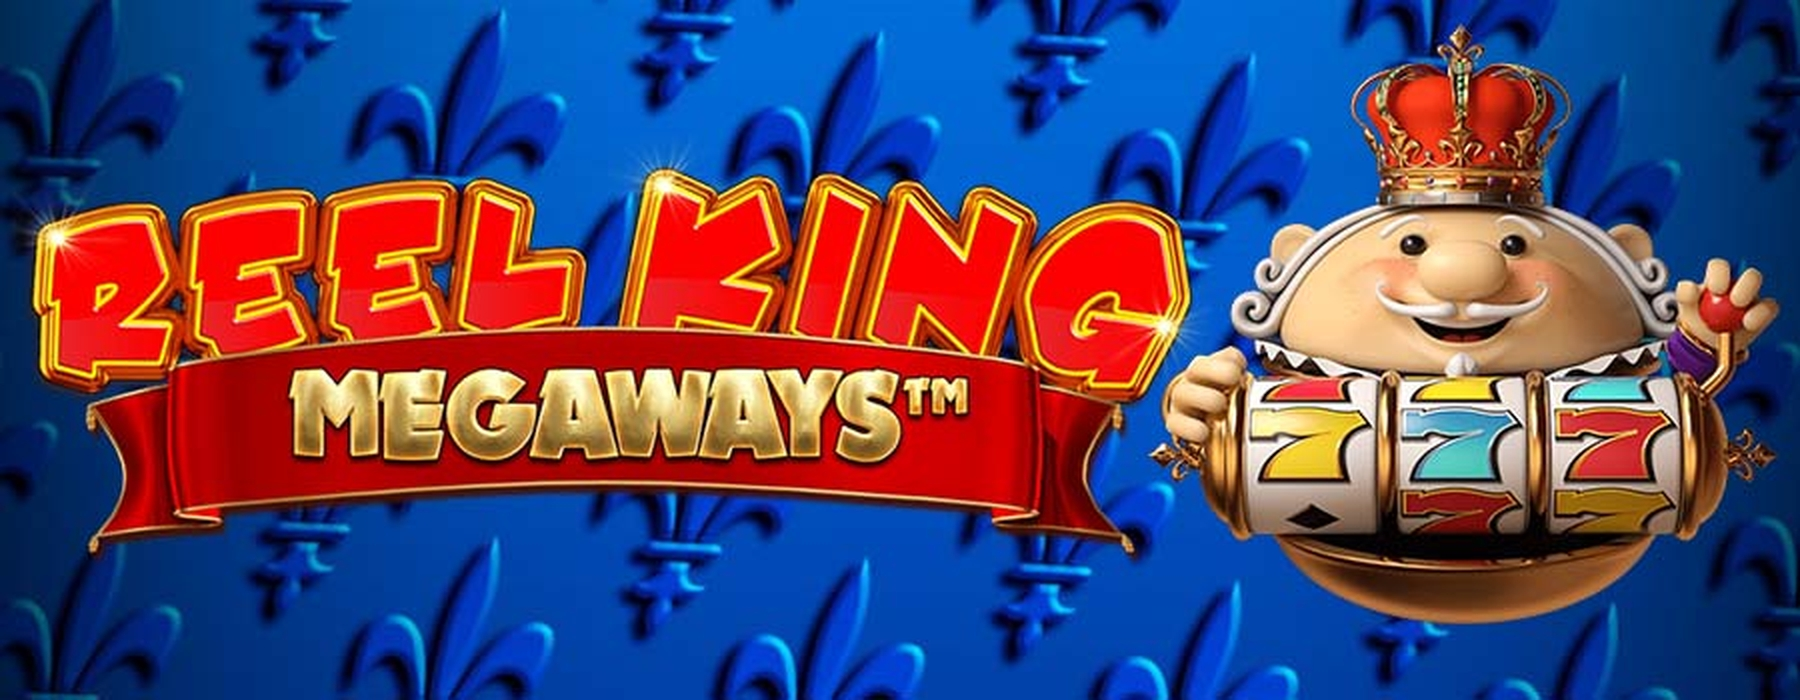 Reels in Reel King Megaways Slot Game by Inspired Gaming